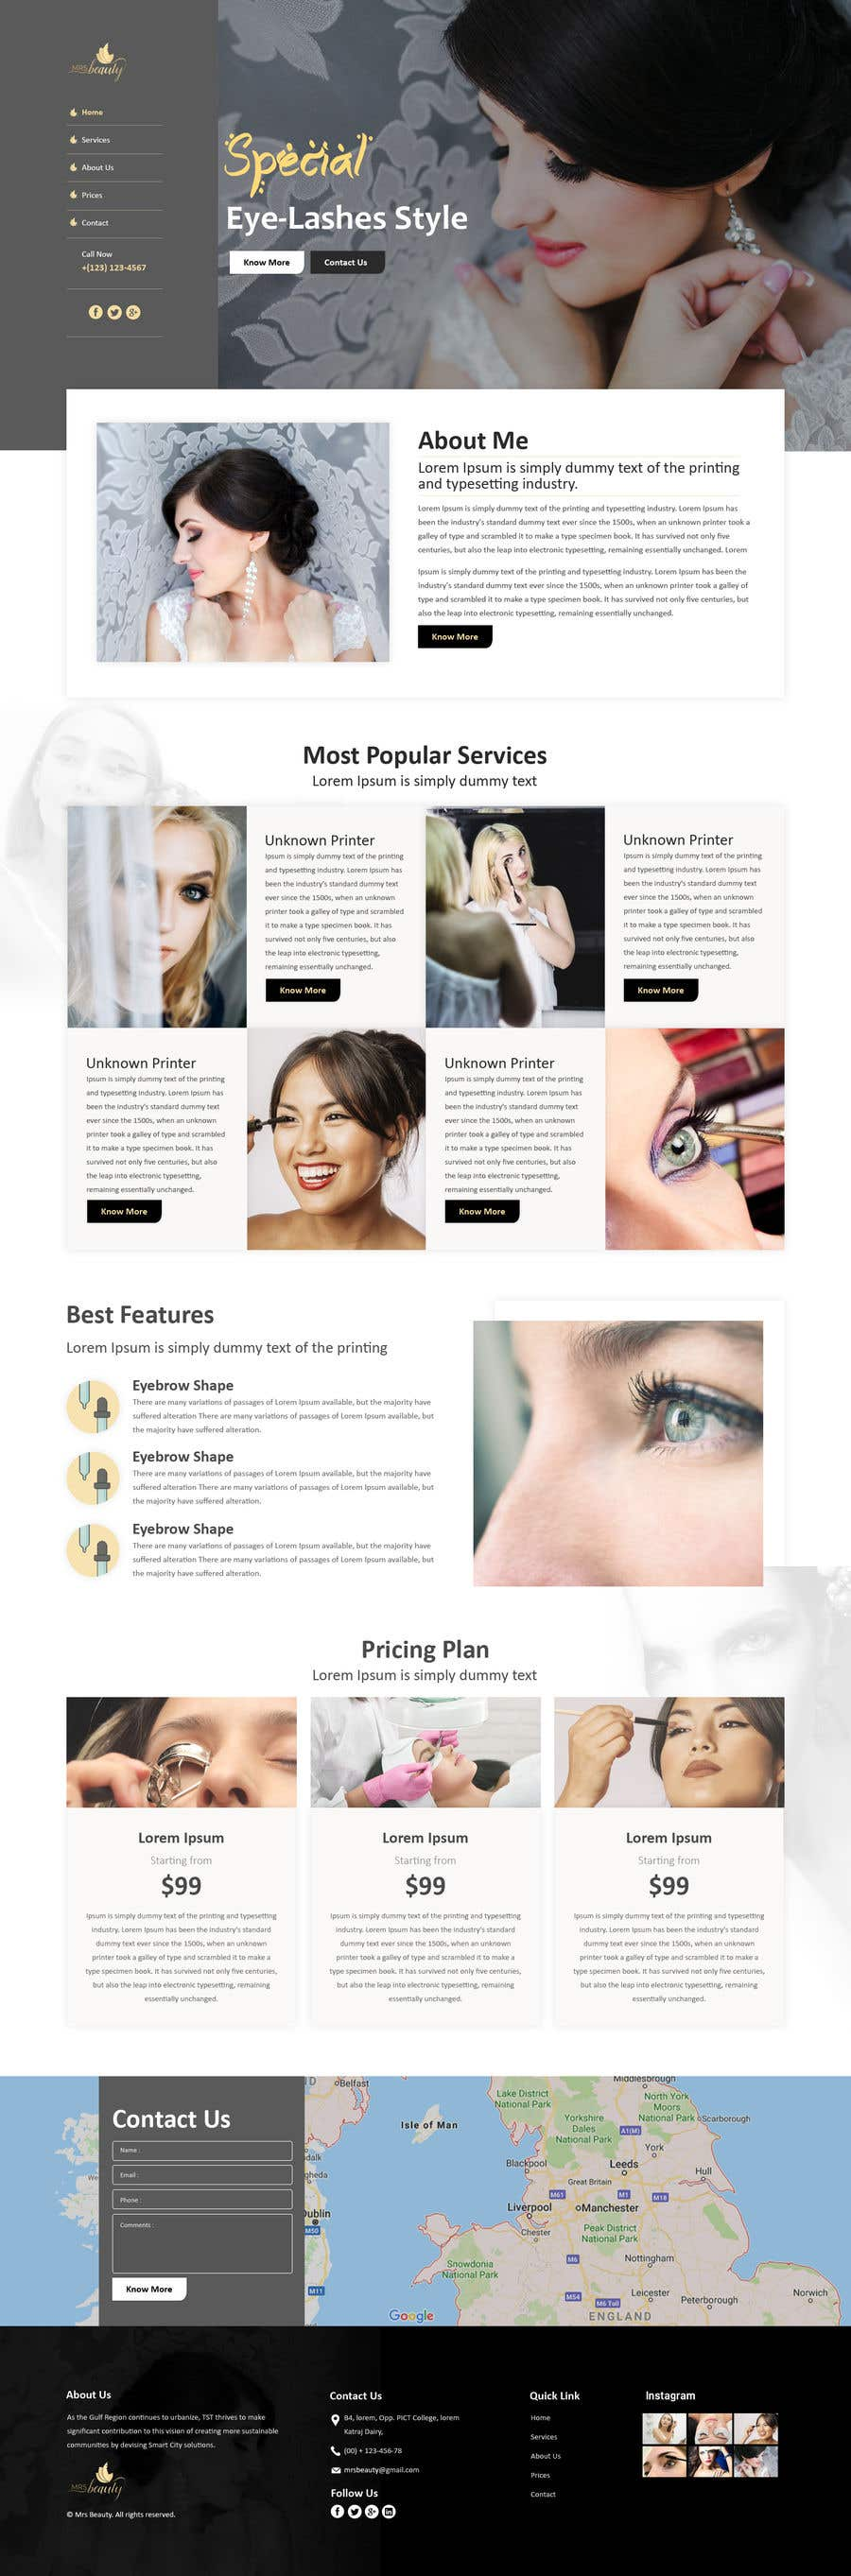 Contest Entry #23 for 150$ Guaranteed - Wordpress Website for an Eye-Lashes Company